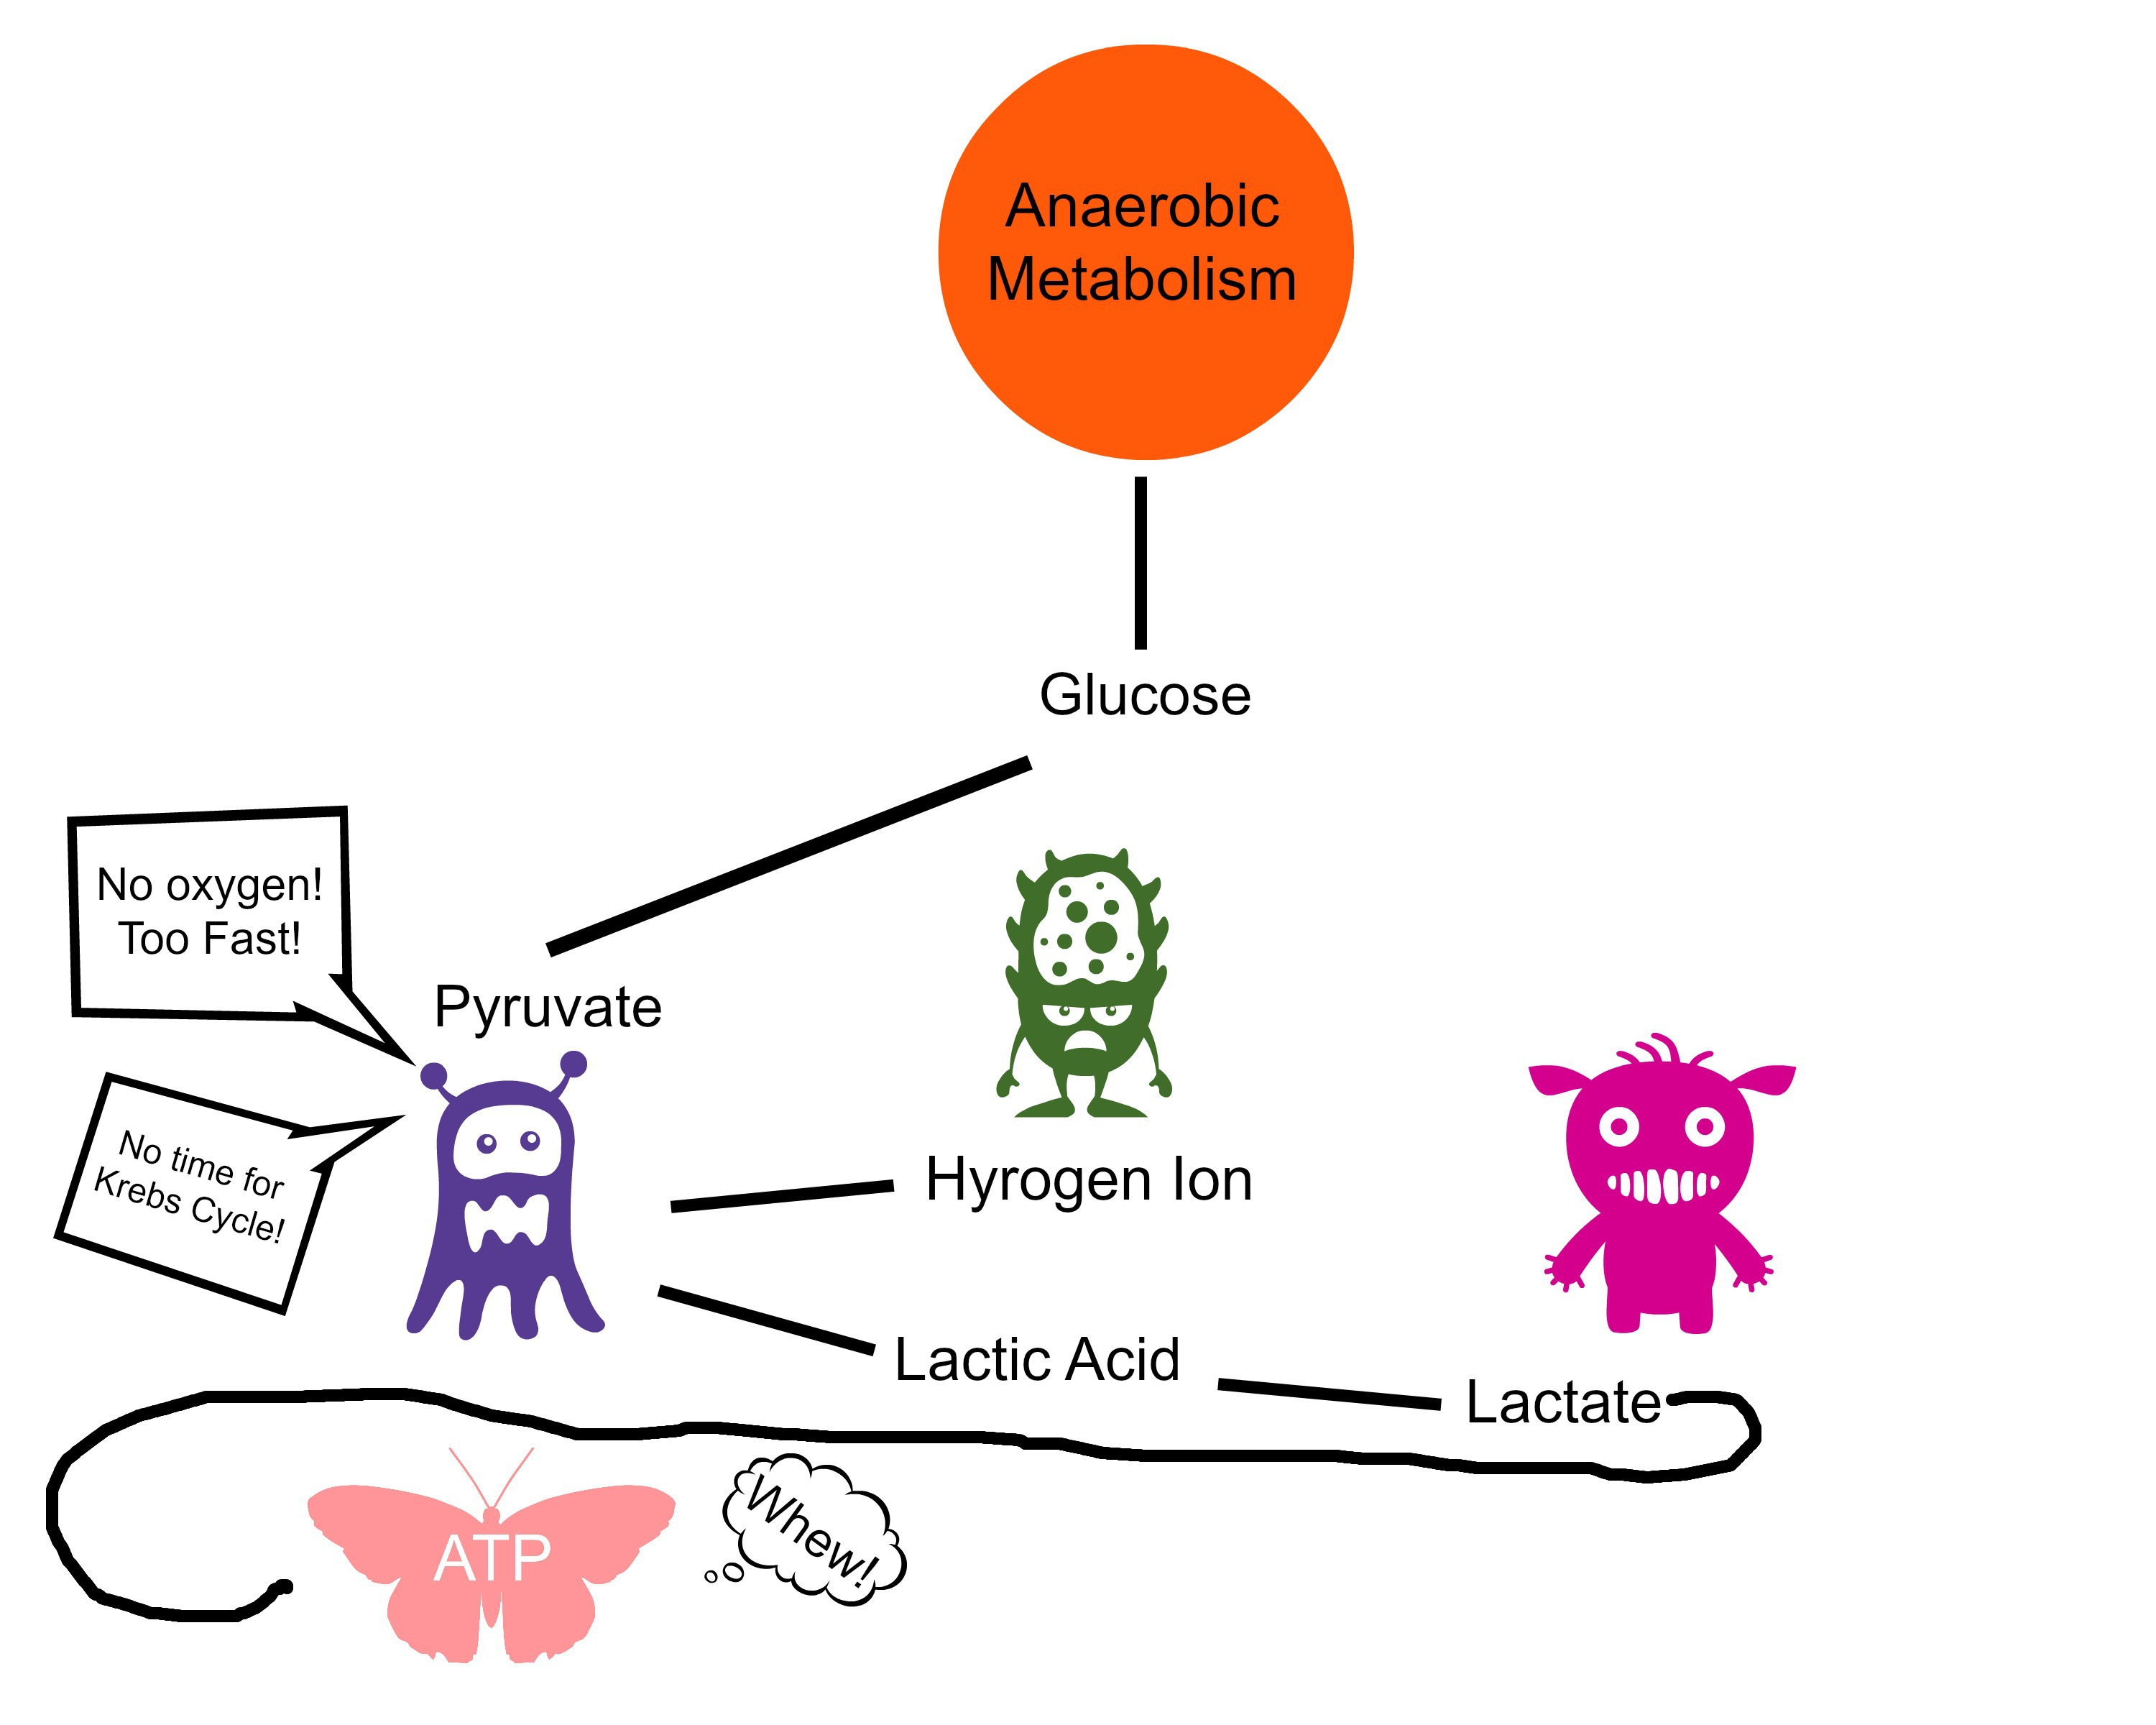 lactic acidosis Summary metformin rarely, if ever, causes lactic acidosis when it is used as labeled metformin is associated with lactic acidosis in patients with conditions that can themselves cause lactic acidosis (heart failure, hypoxia, sepsis, etc.